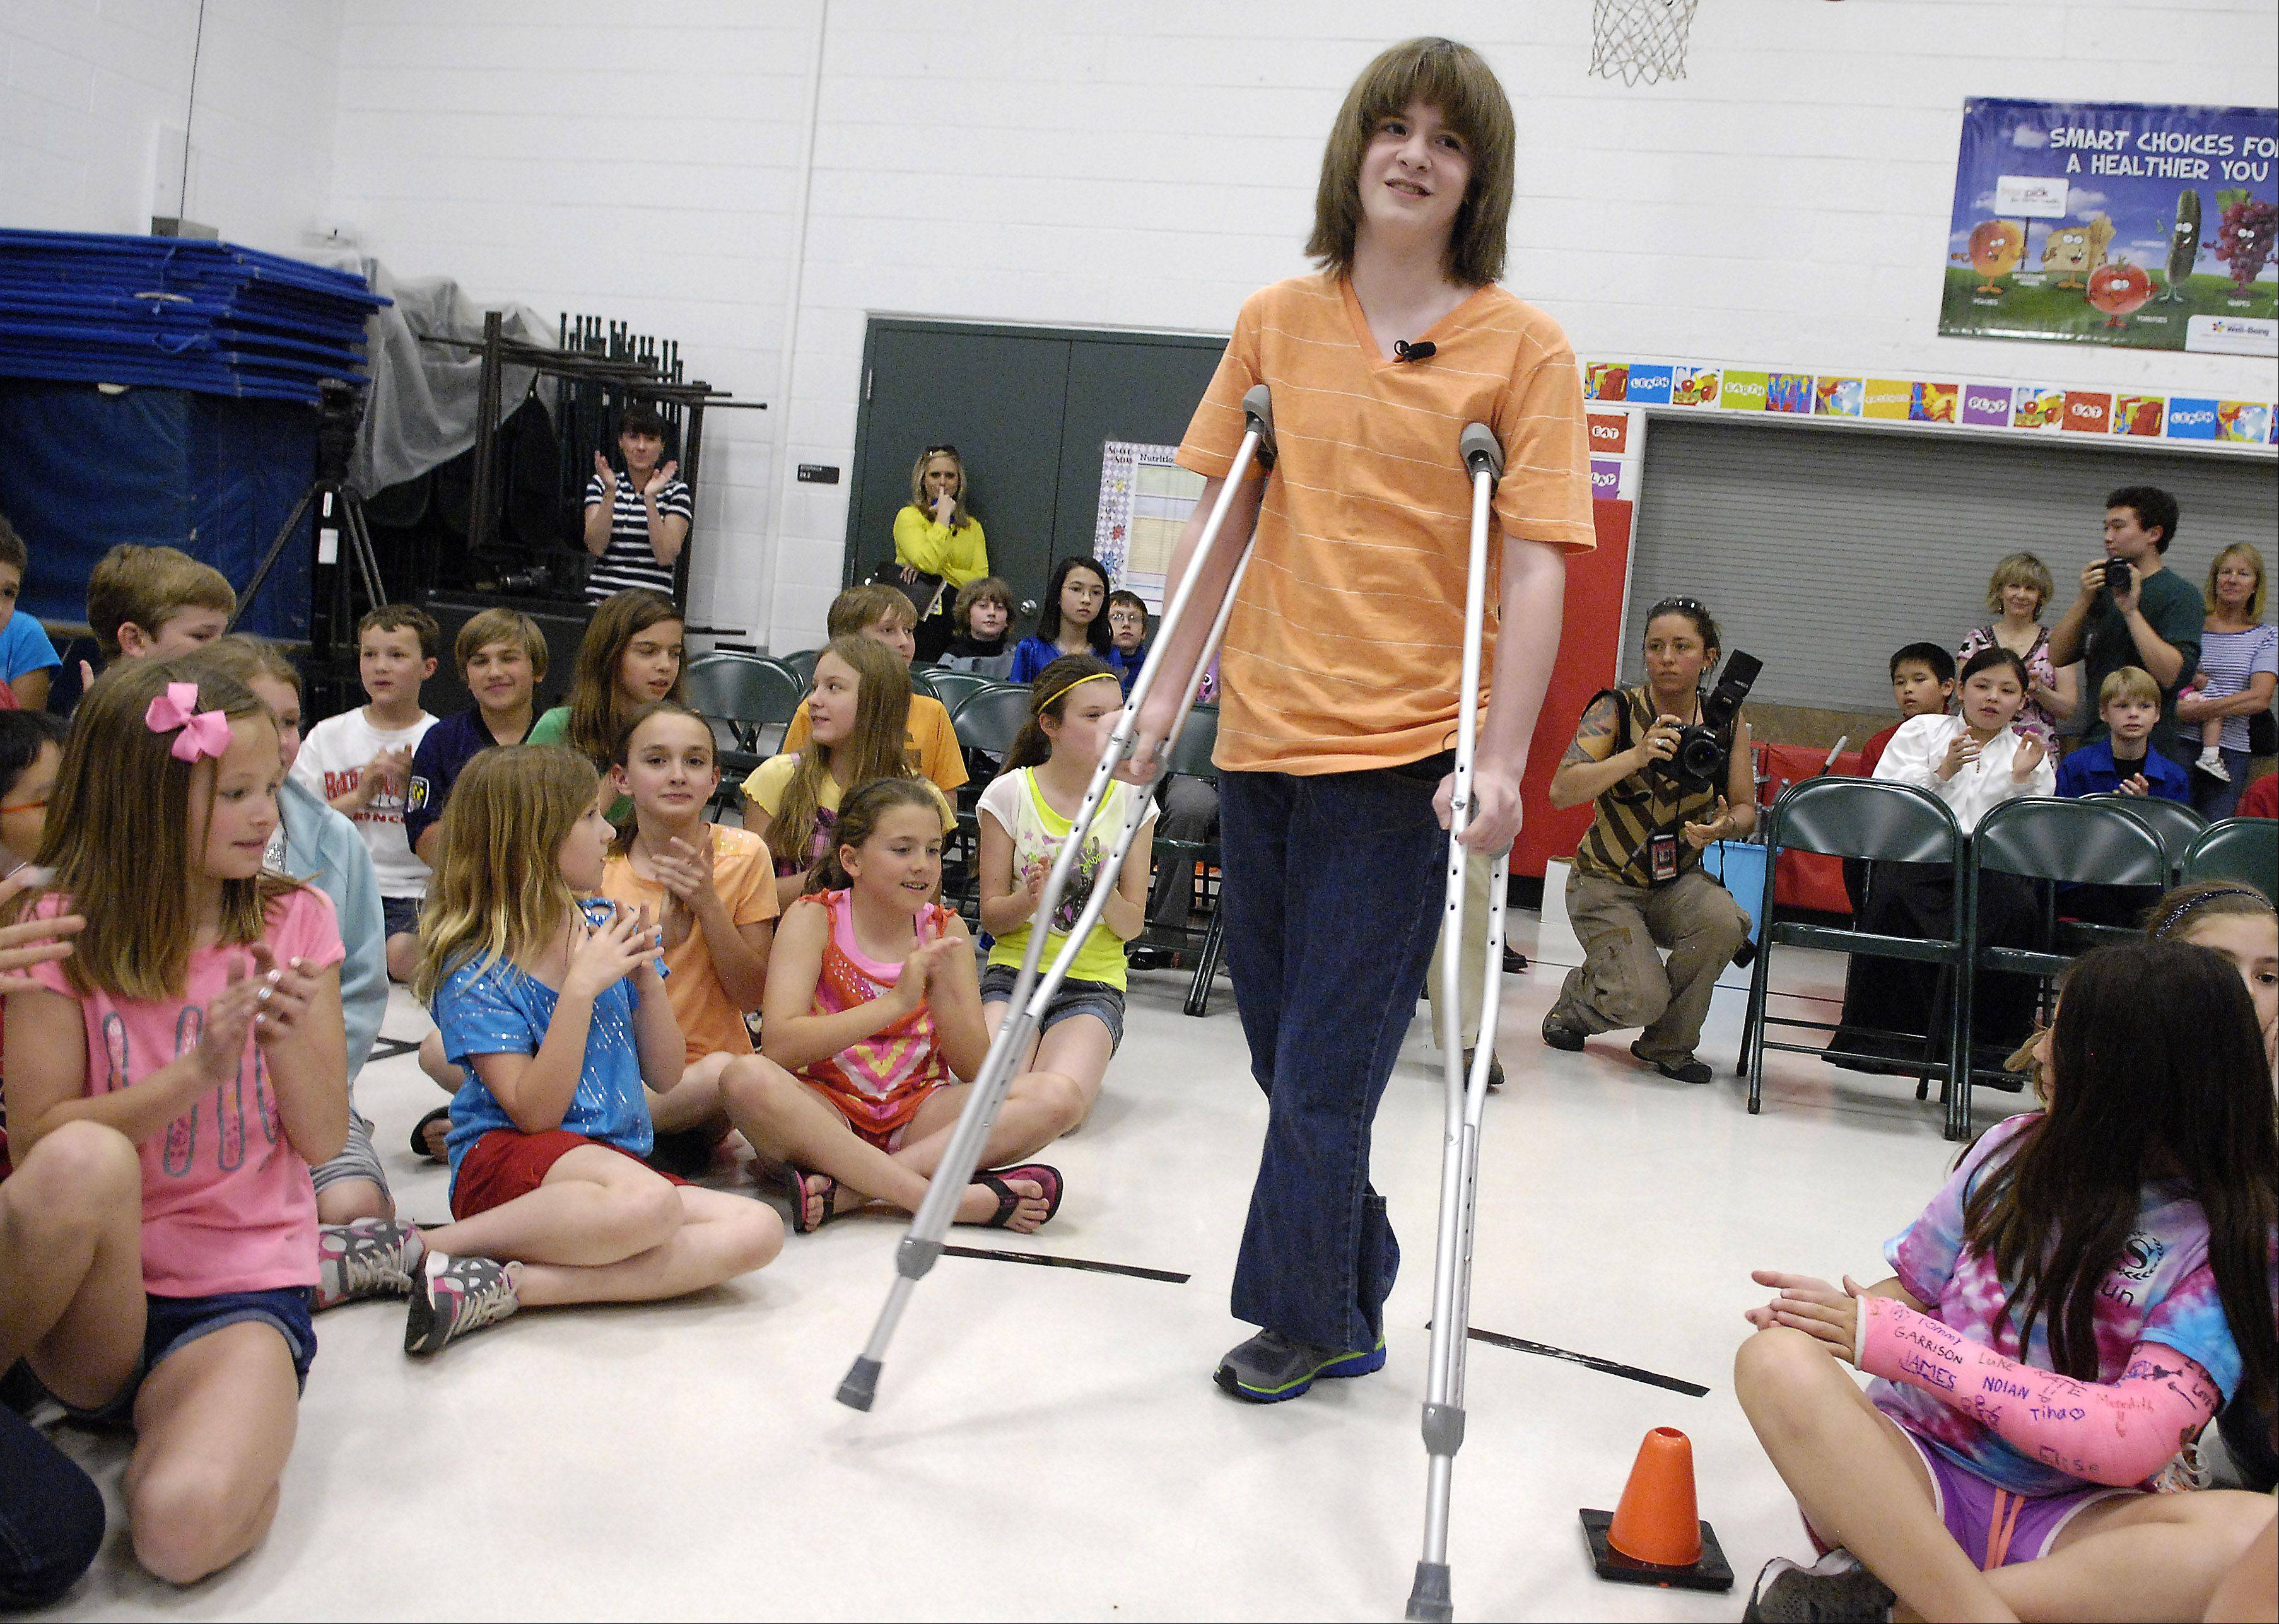 Dominic Szymanski, 11, comes back to Hough Street School in Barrington for the first time since losing his foot after being struck by a train in March. He is a fifth-grader at the school.